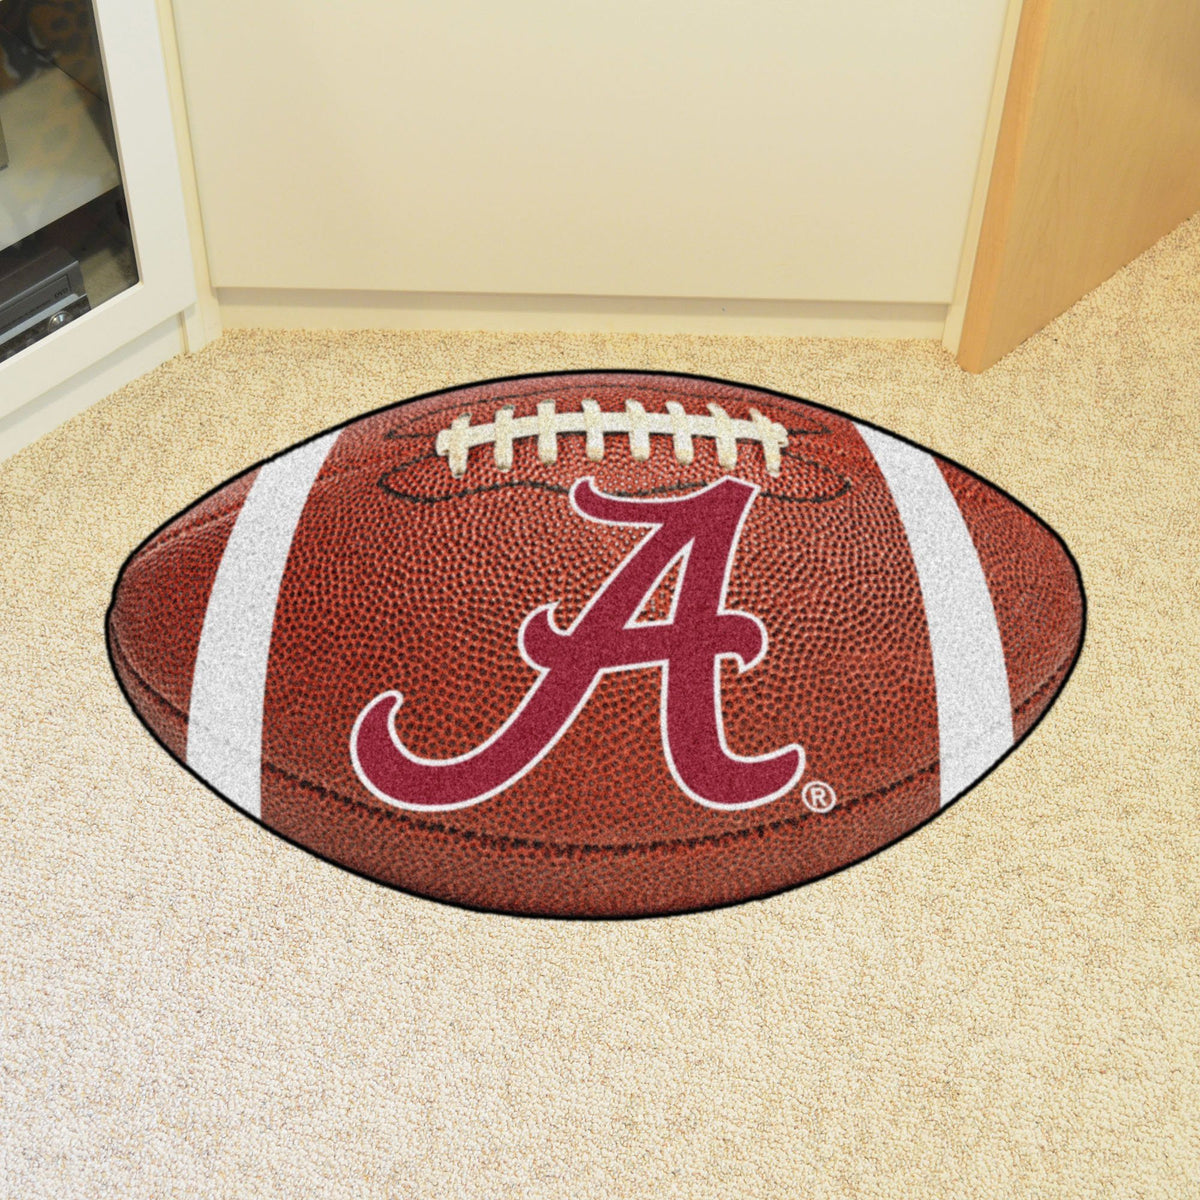 Collegiate - Football Mat: A - K Collegiate Mats, Rectangular Mats, Football Mat, Collegiate, Home Fan Mats Alabama 2